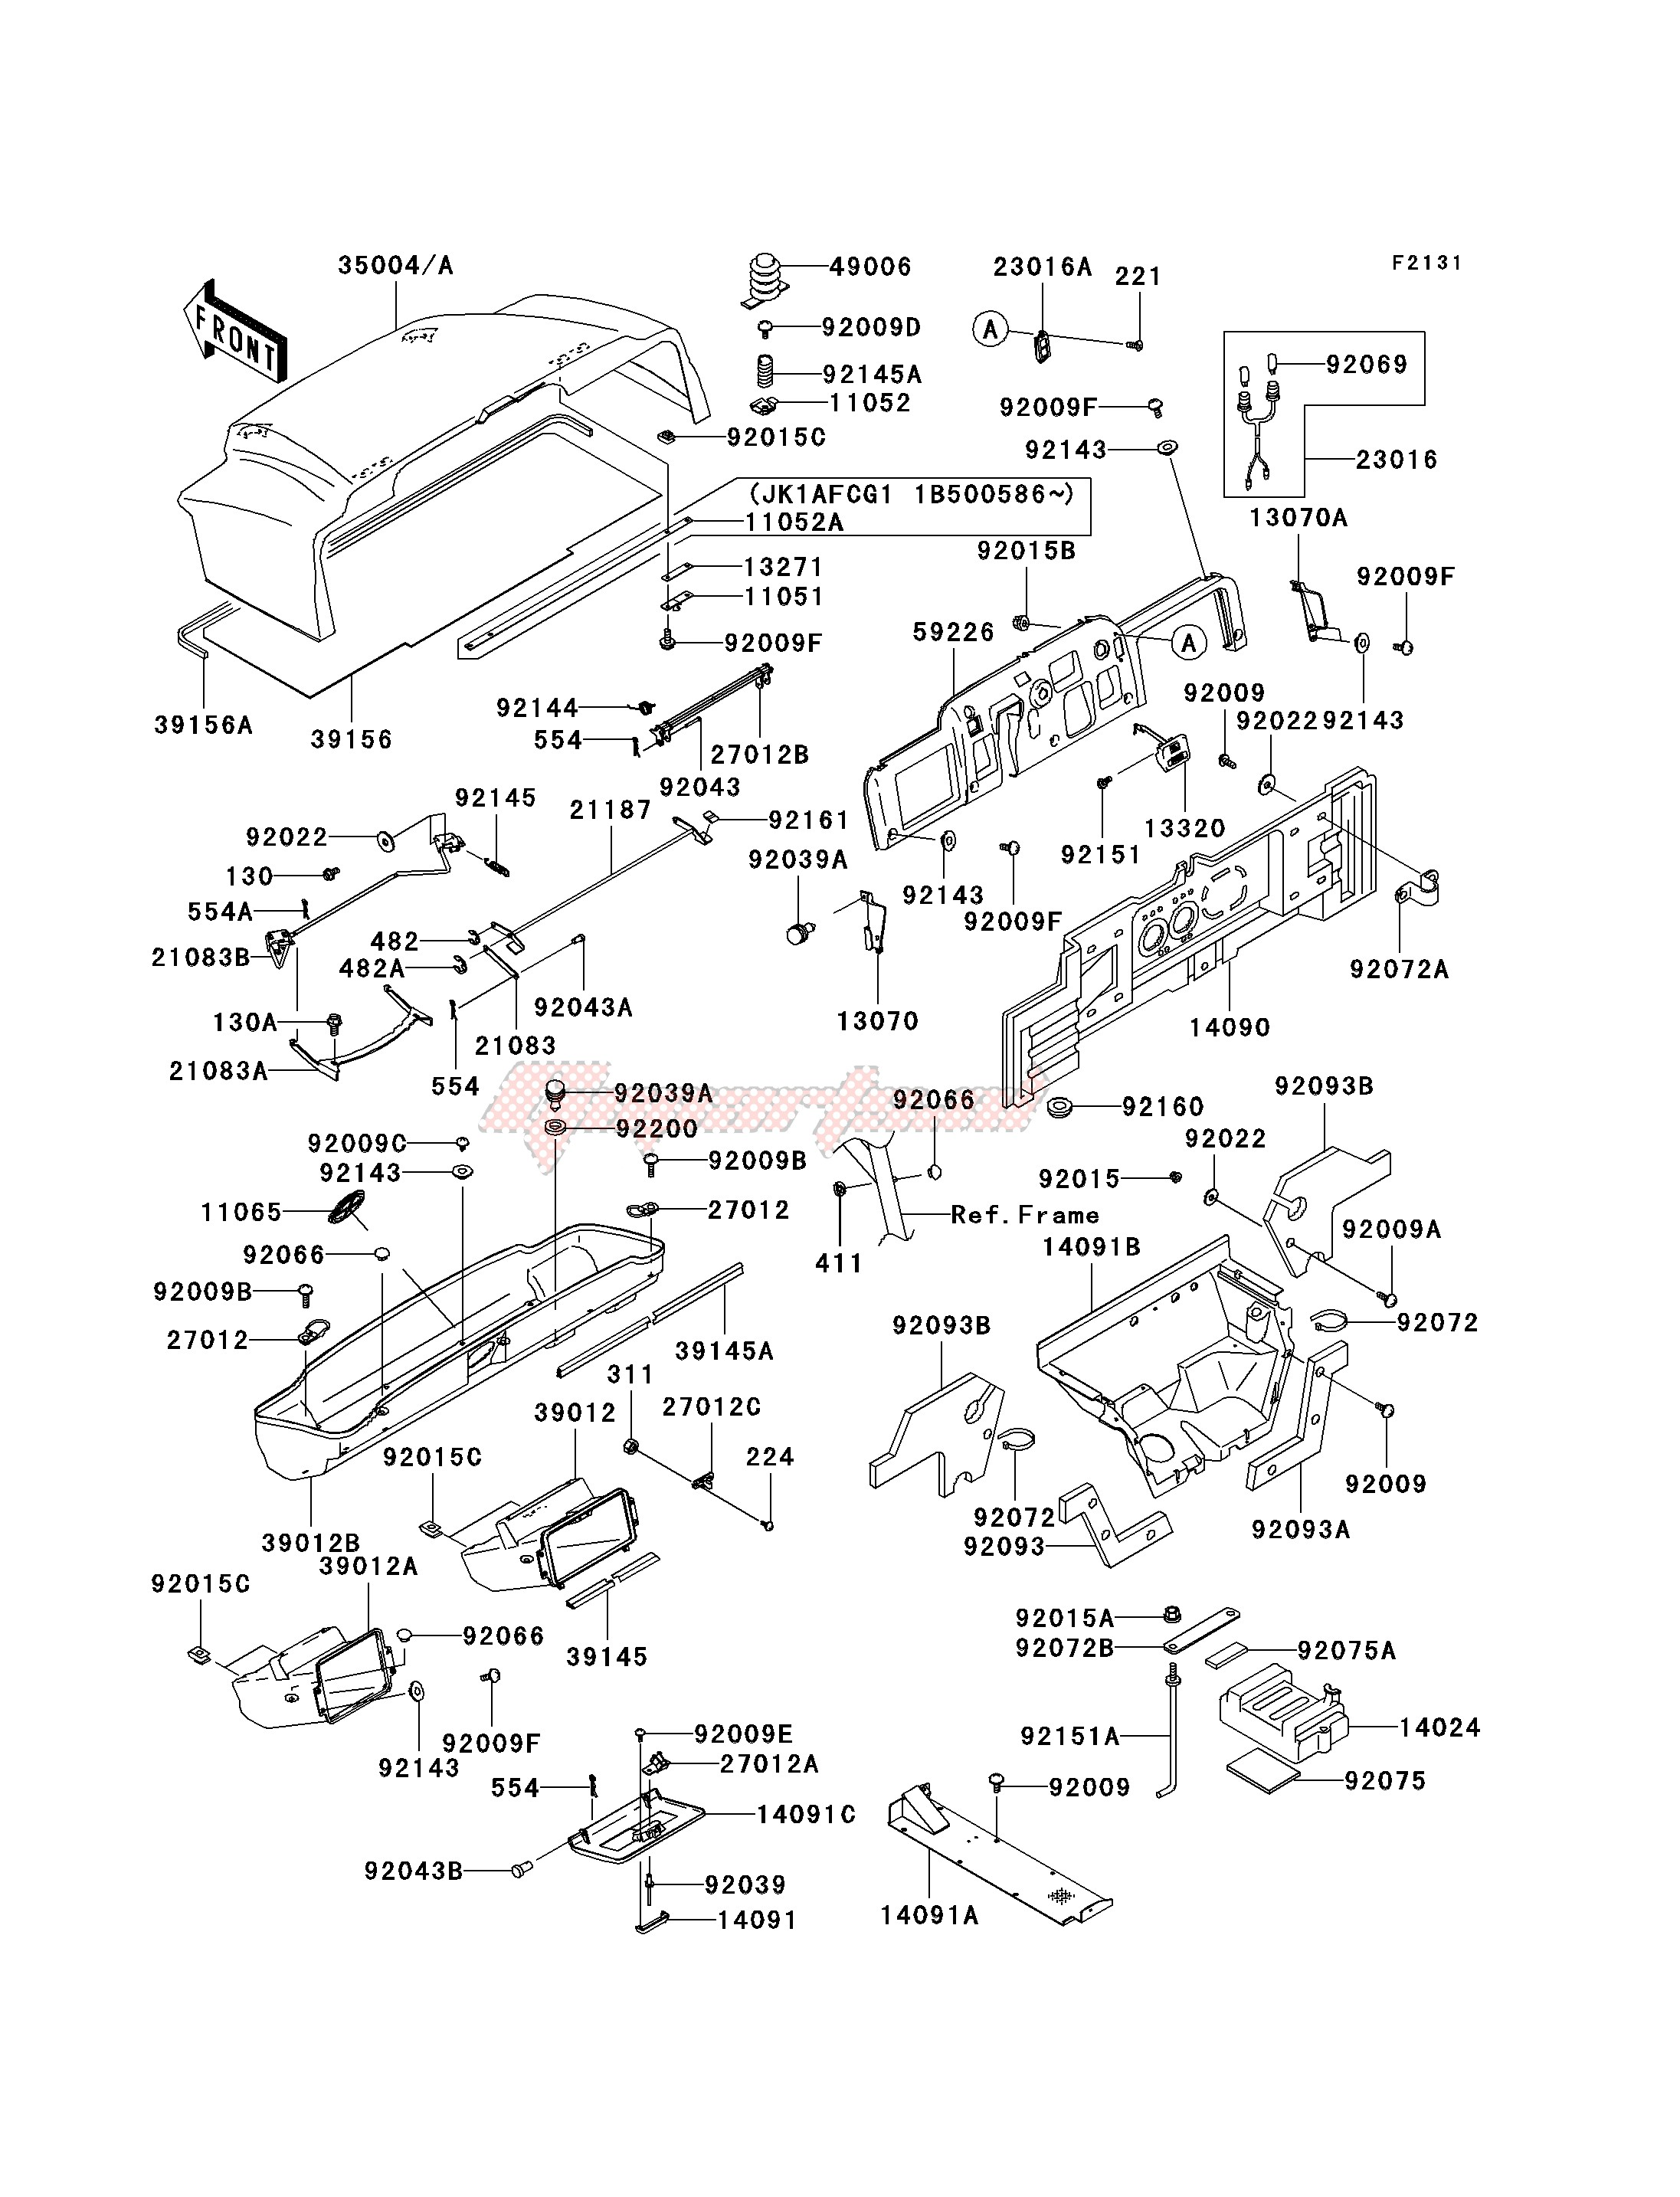 Frame-FRAME FITTINGS -- KAF620-G1- -